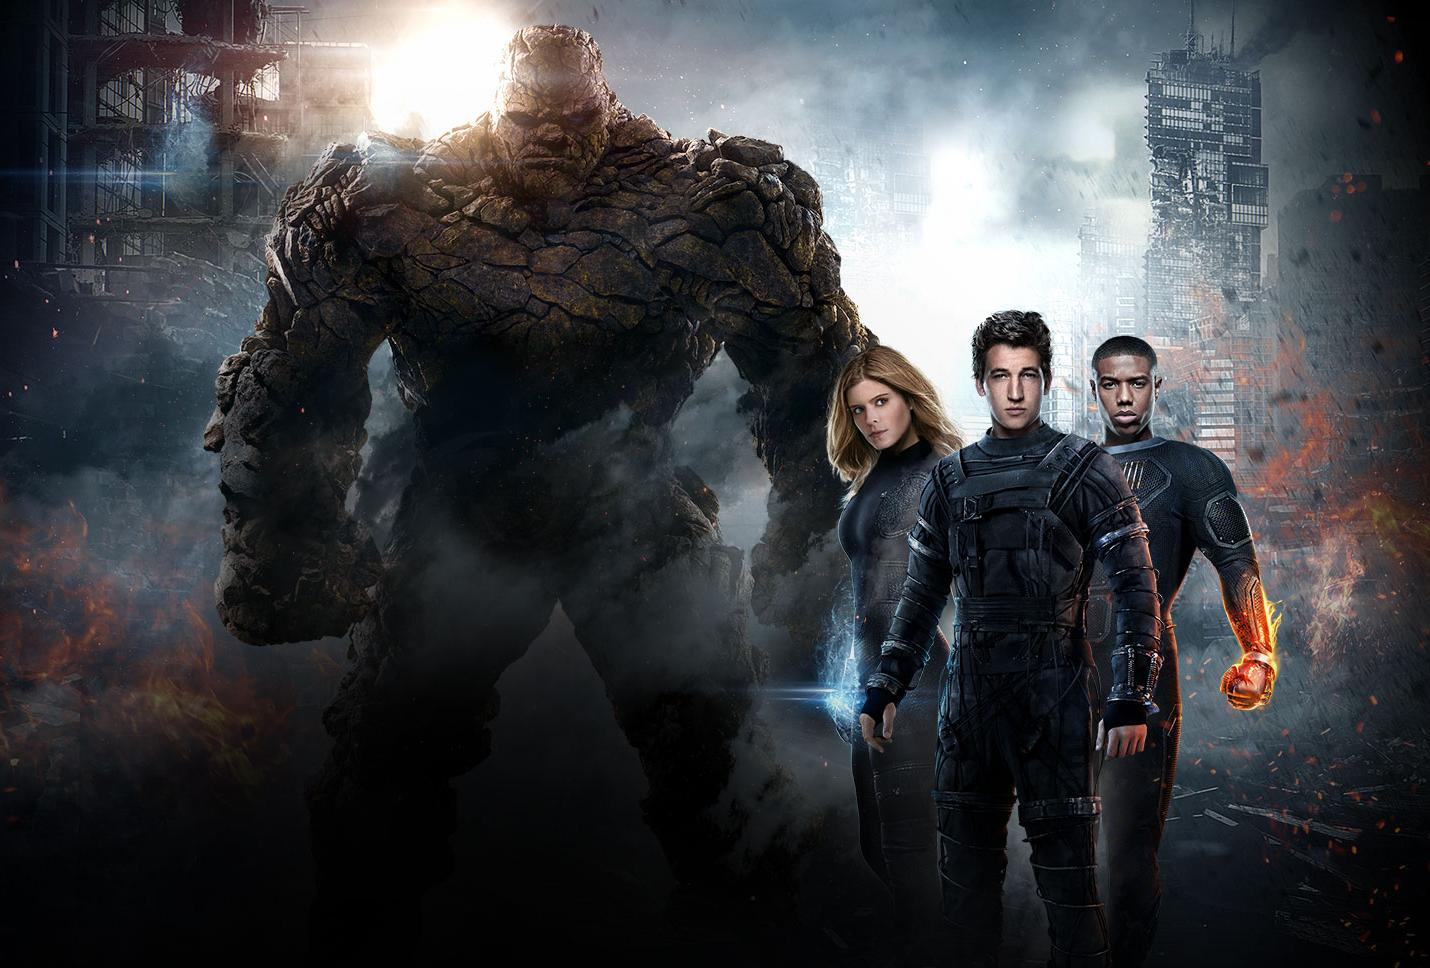 The Fantastic Four  A festival of CG effects and the lowest box office opening of any superhero movie of the modern era.